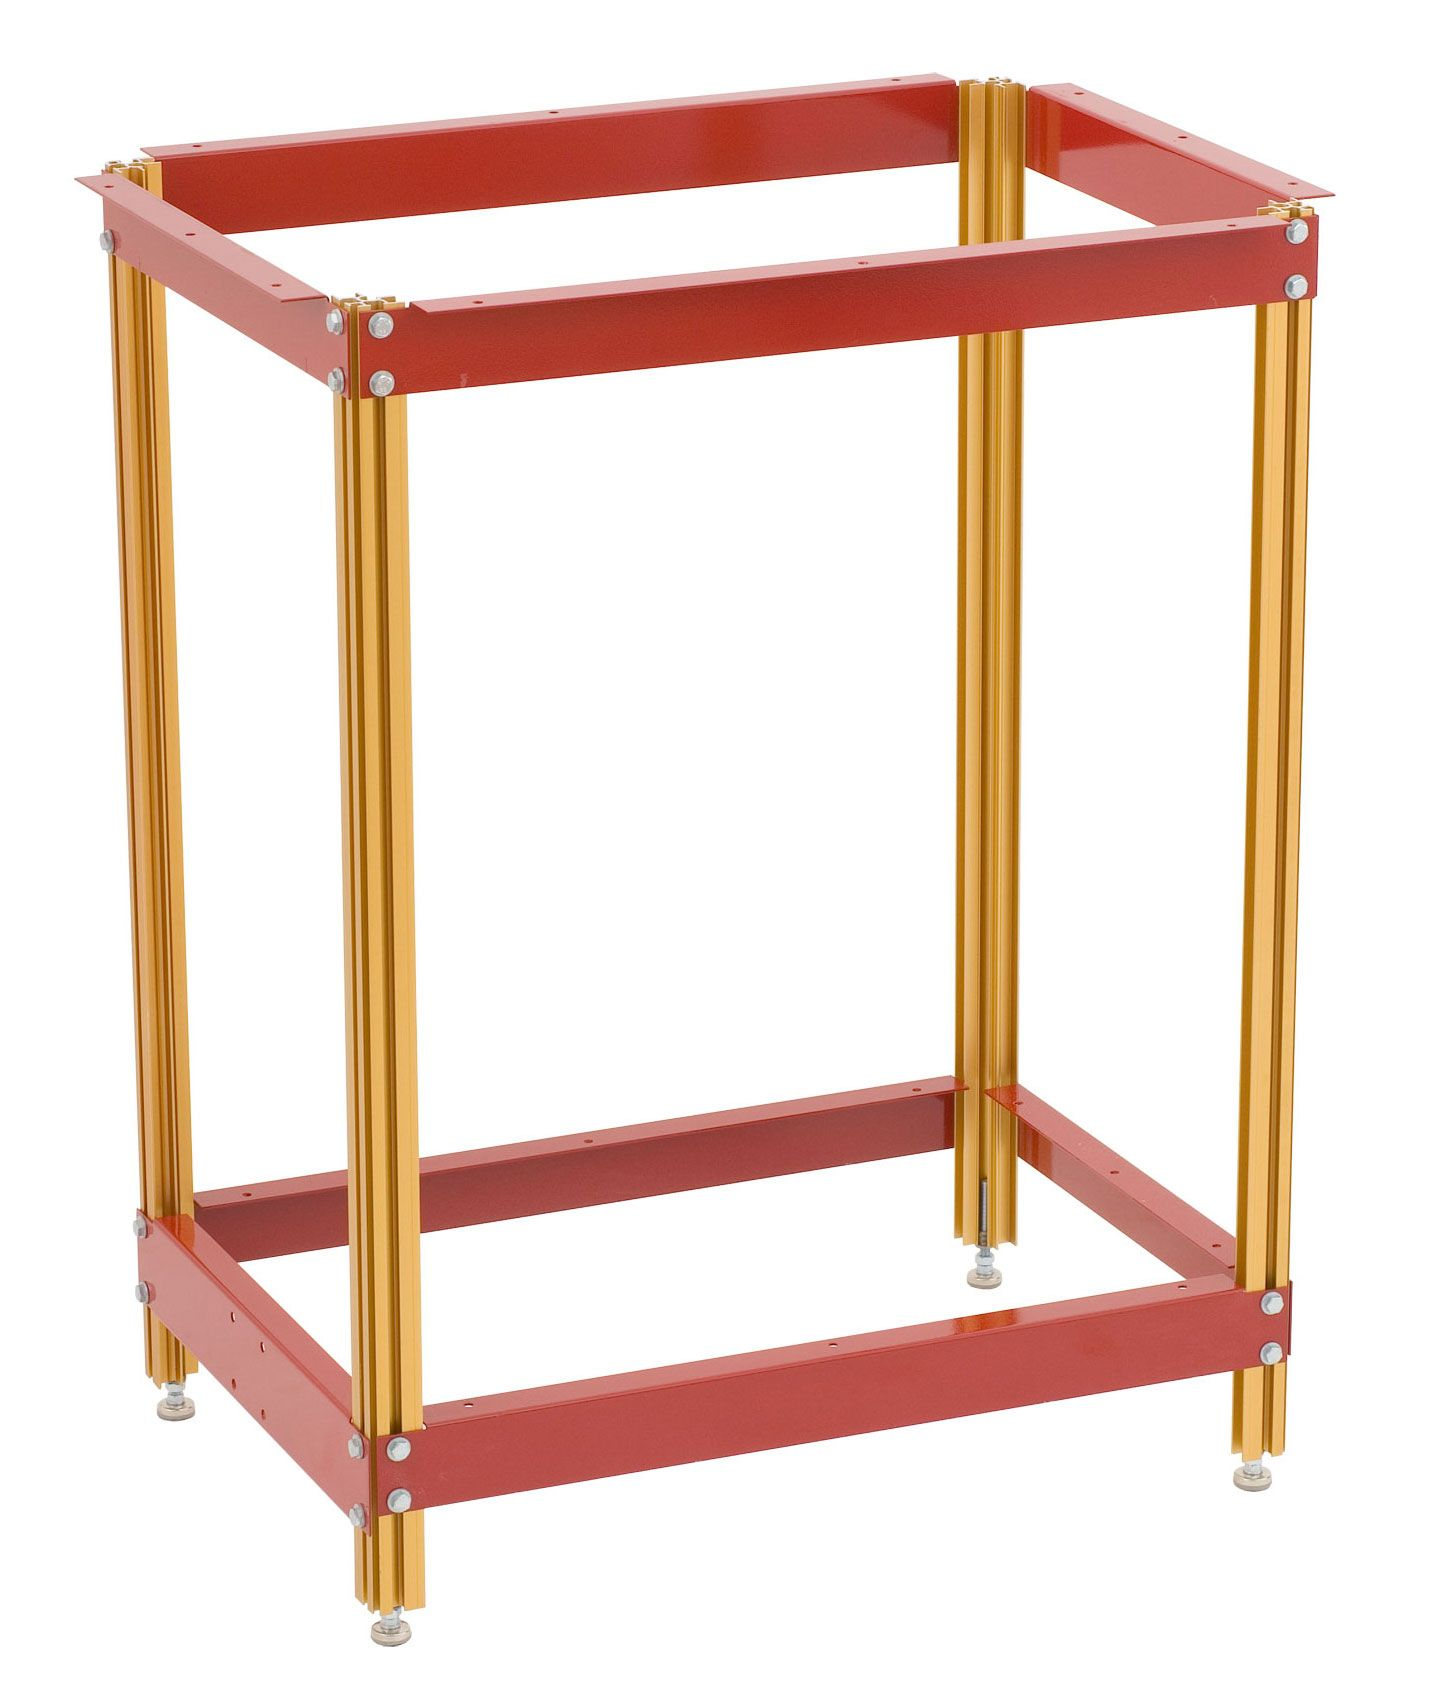 Incra router table stands woodworking wishlist pinterest incra router table stands keyboard keysfo Choice Image